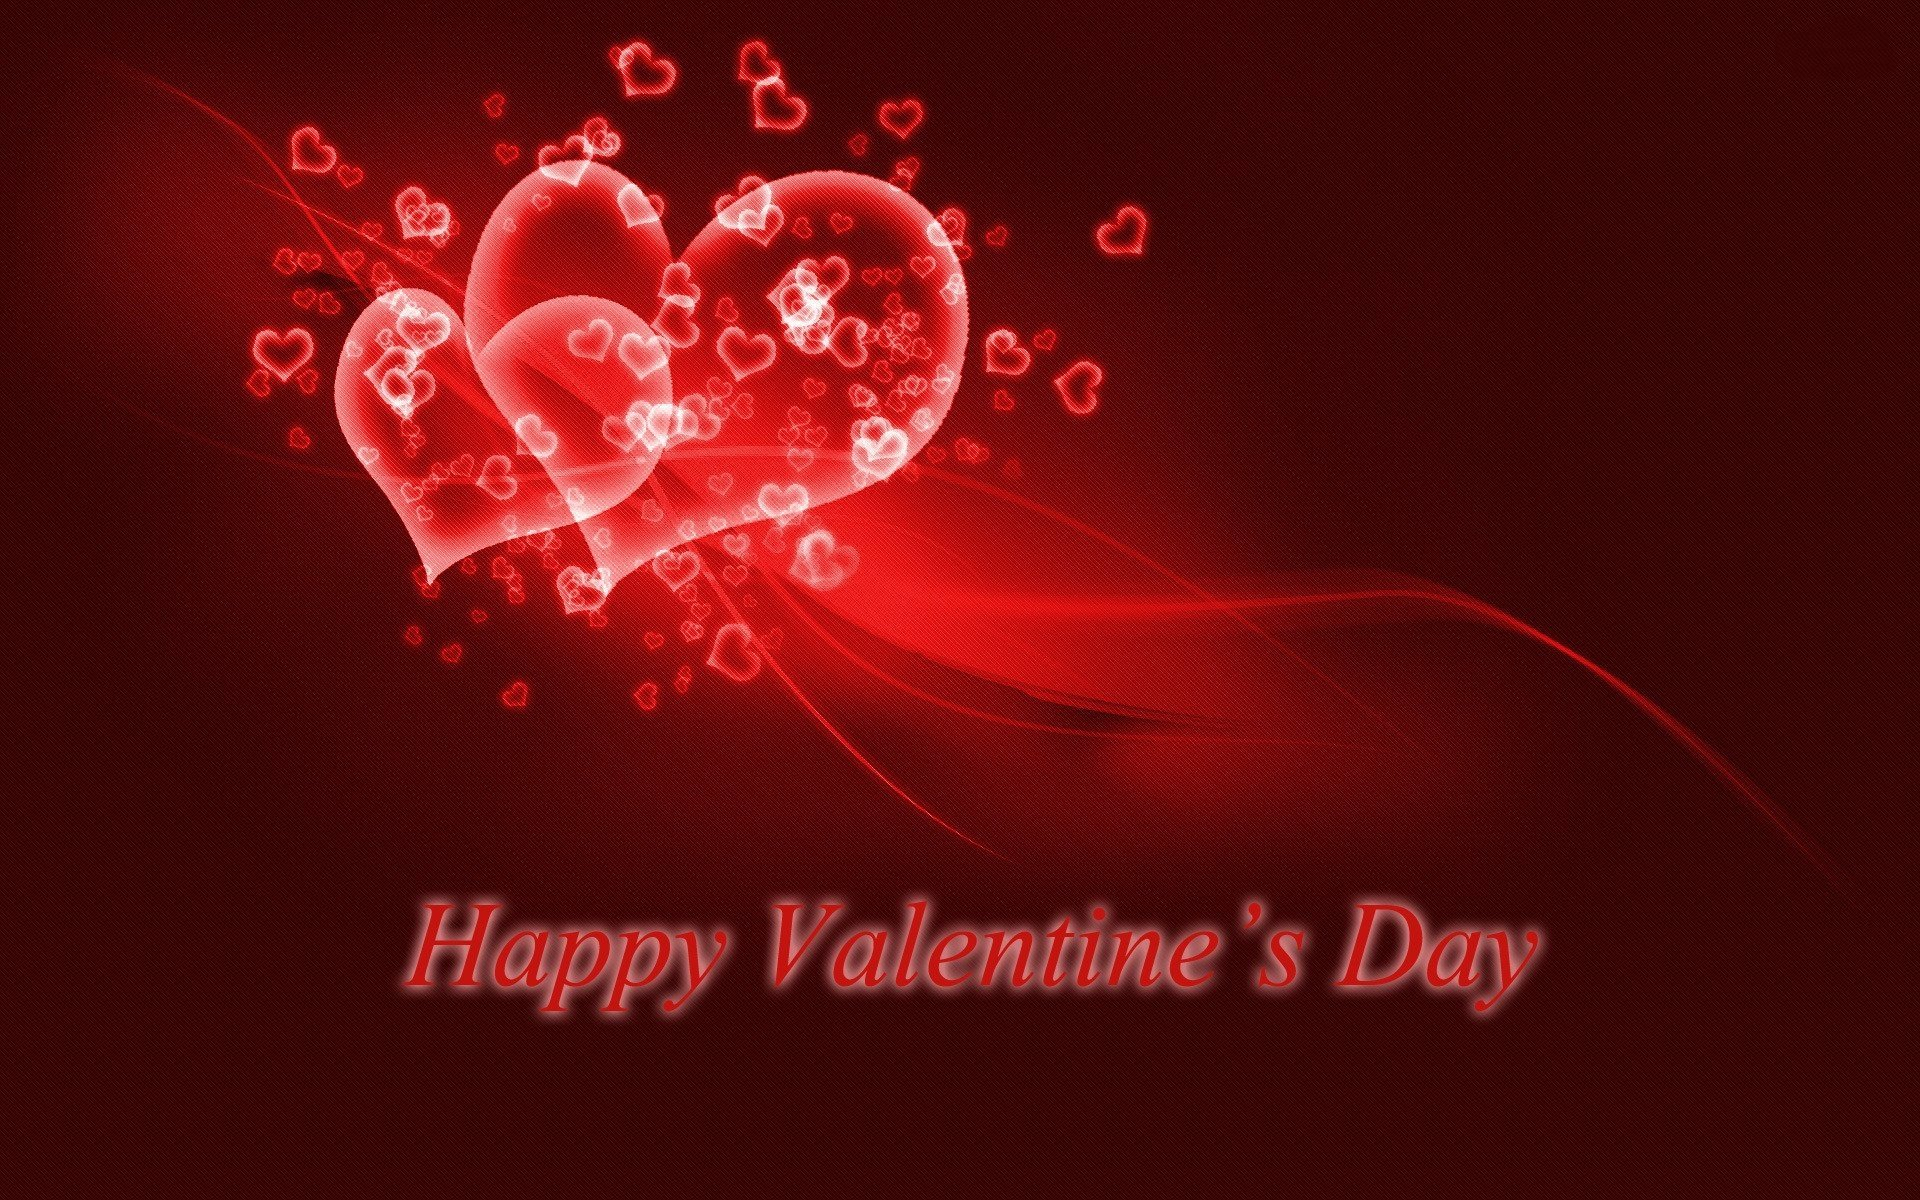 Holiday - Valentine's Day  Happy Valentine's Day Wallpaper